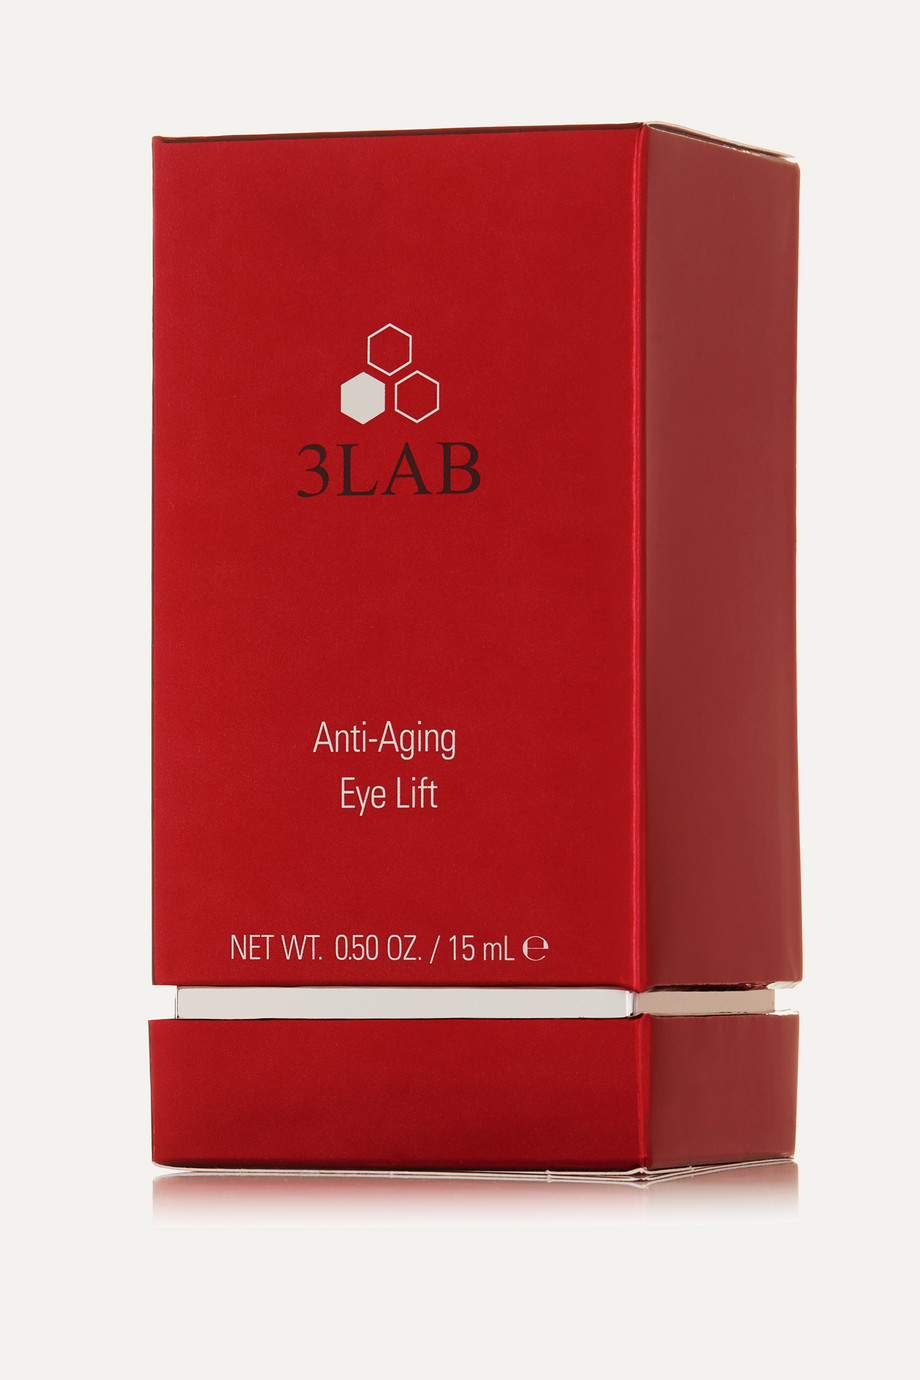 3LAB Anti-Aging Eye Lift, 15 ml – Augenserum